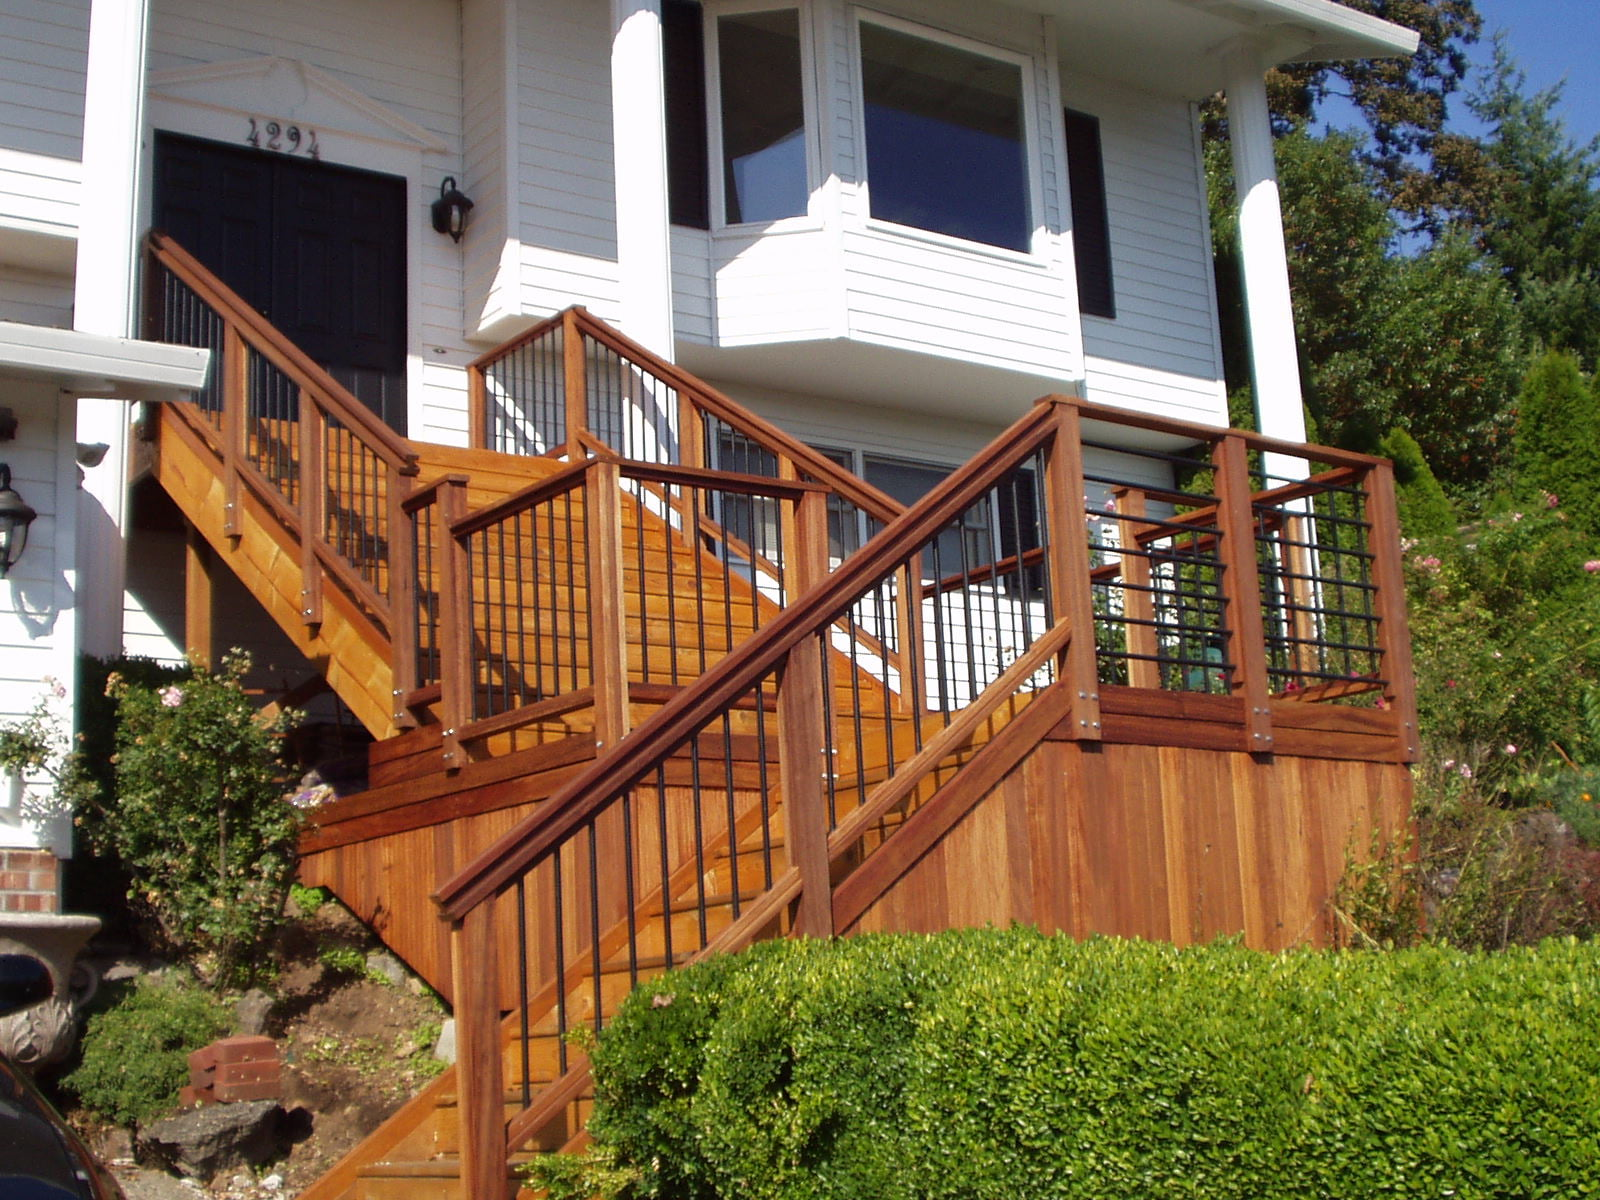 Understanding About Mahogany Dark Red Meranti Kayu Drm Decking